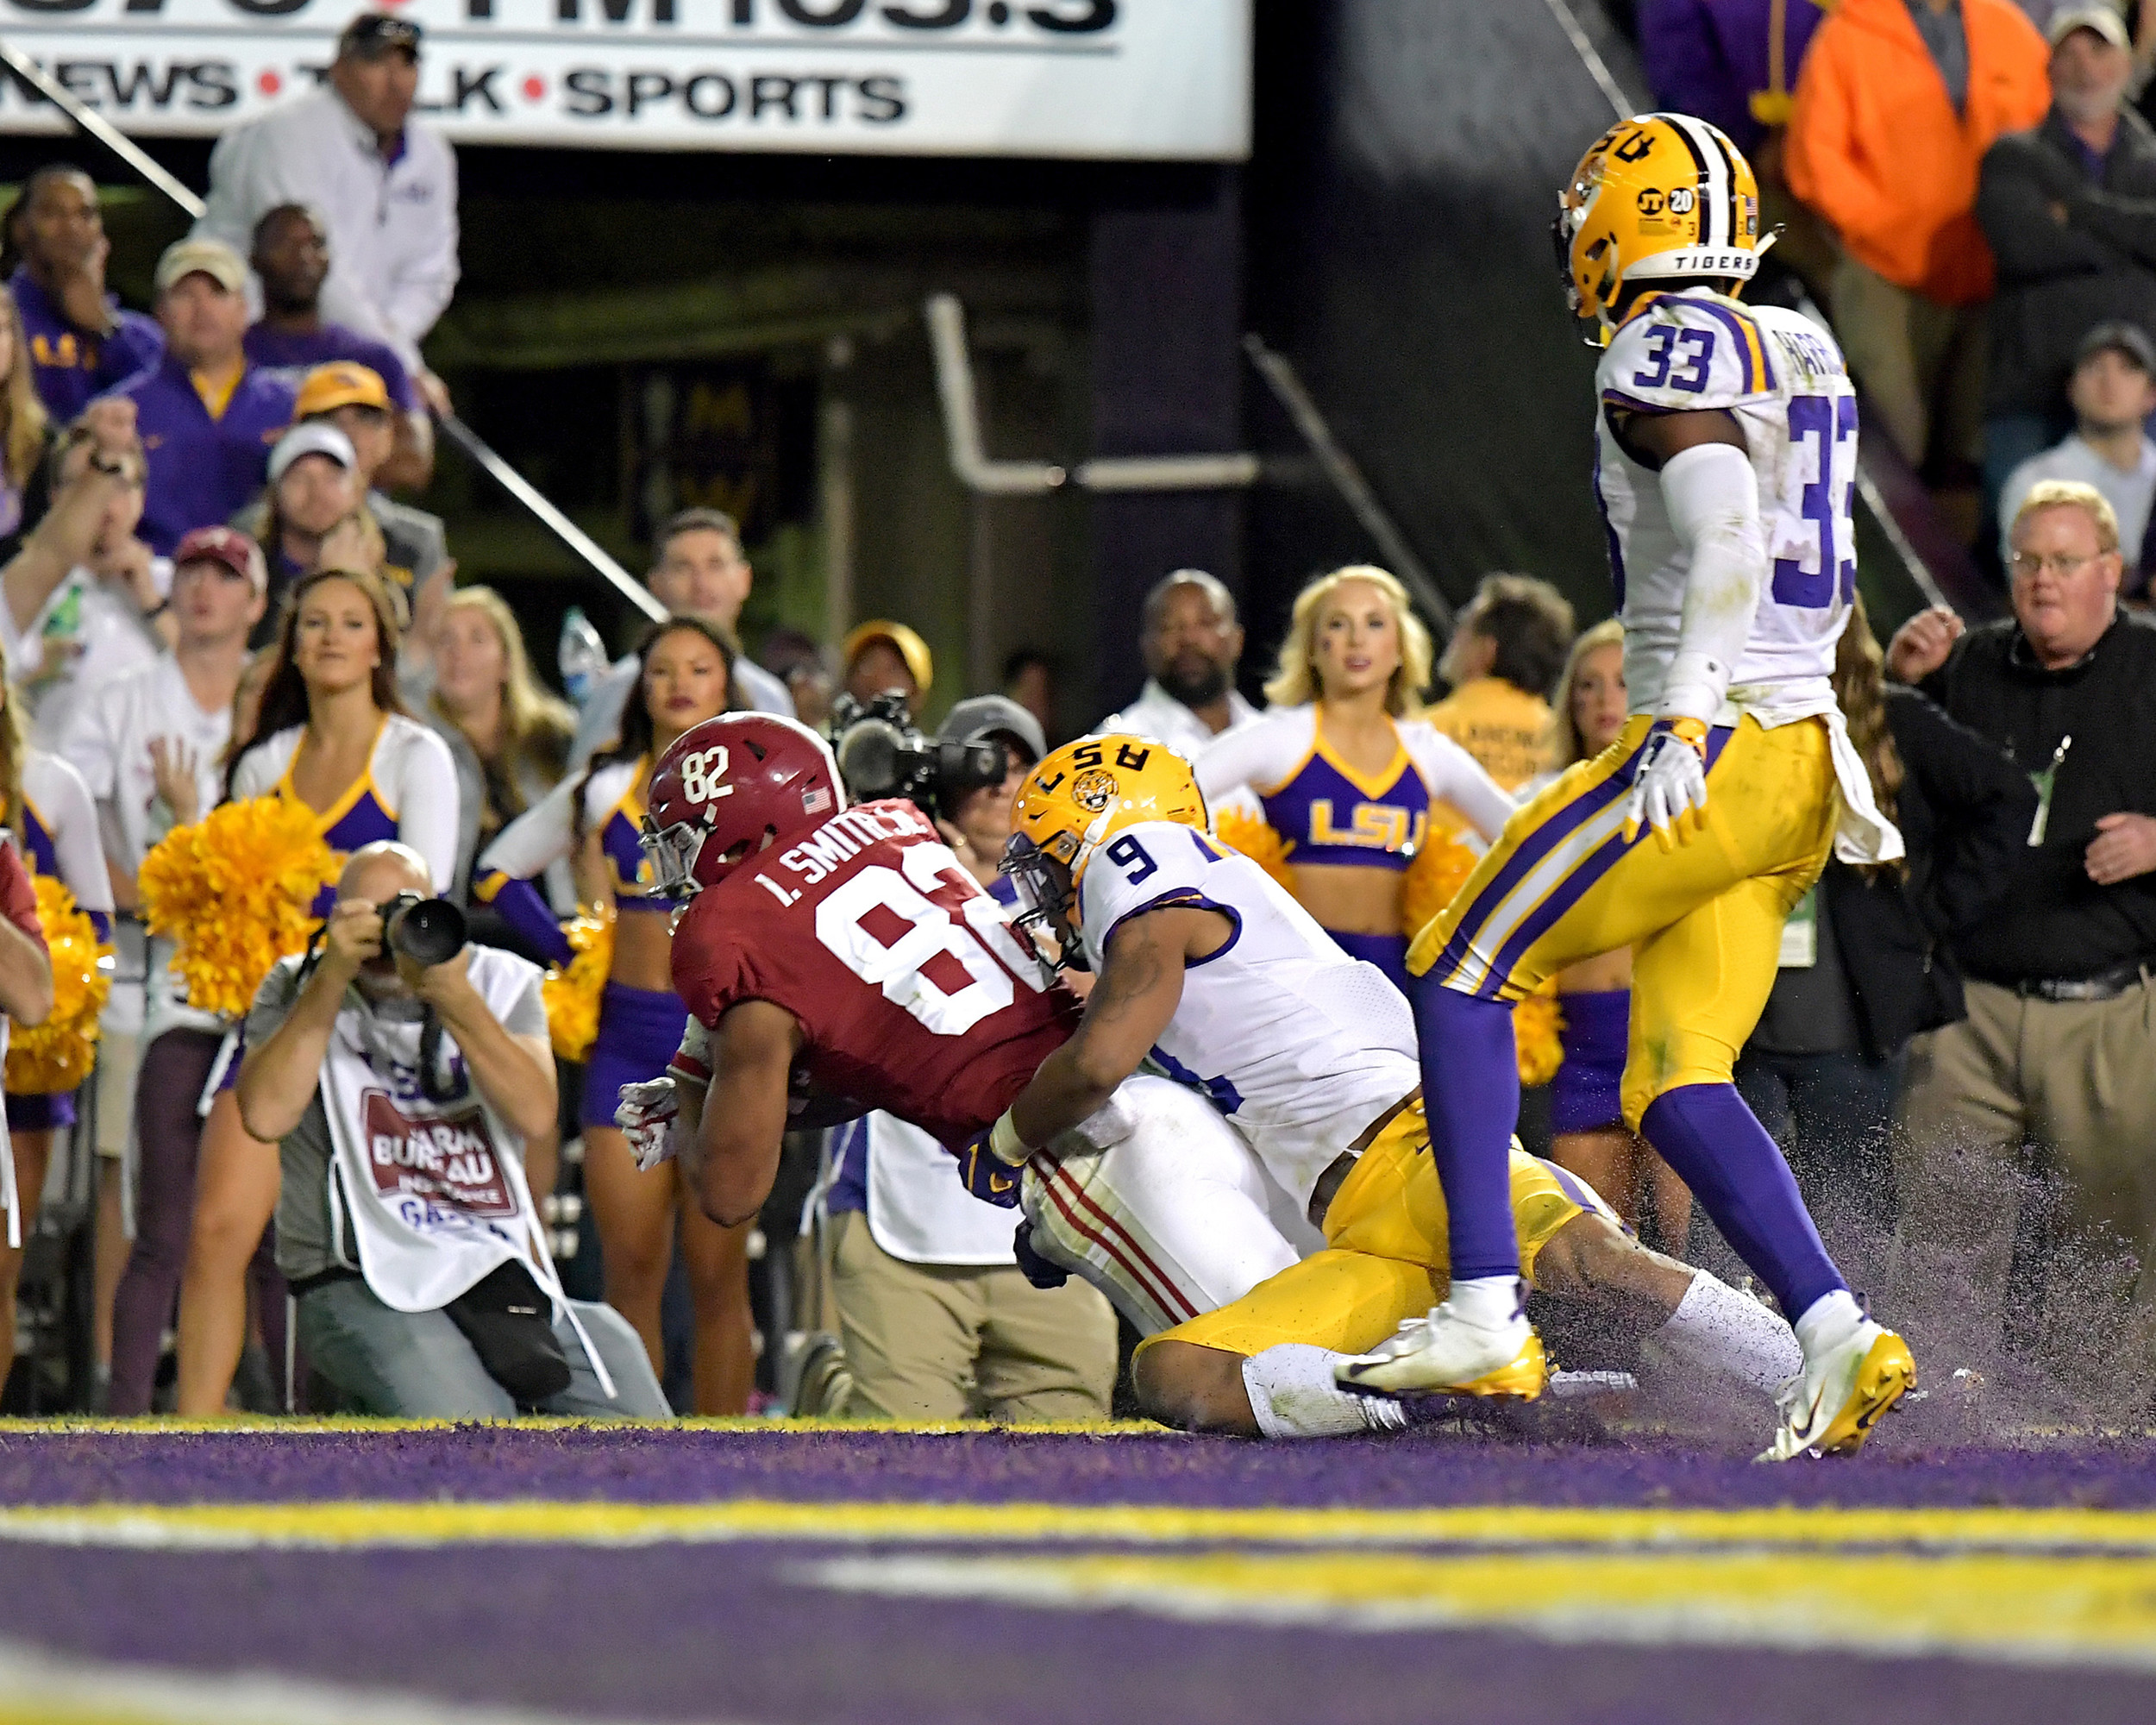 Alabama Crimson Tide tight end Irv Smith Jr. (82) makes a touchdown in the first half of an NCAA football game against the LSU Tigers Saturday, November 3, 2018, at Tiger Stadium in Baton Rouge, La. Alabama wins 29-0. (Photo by Lee Walls)